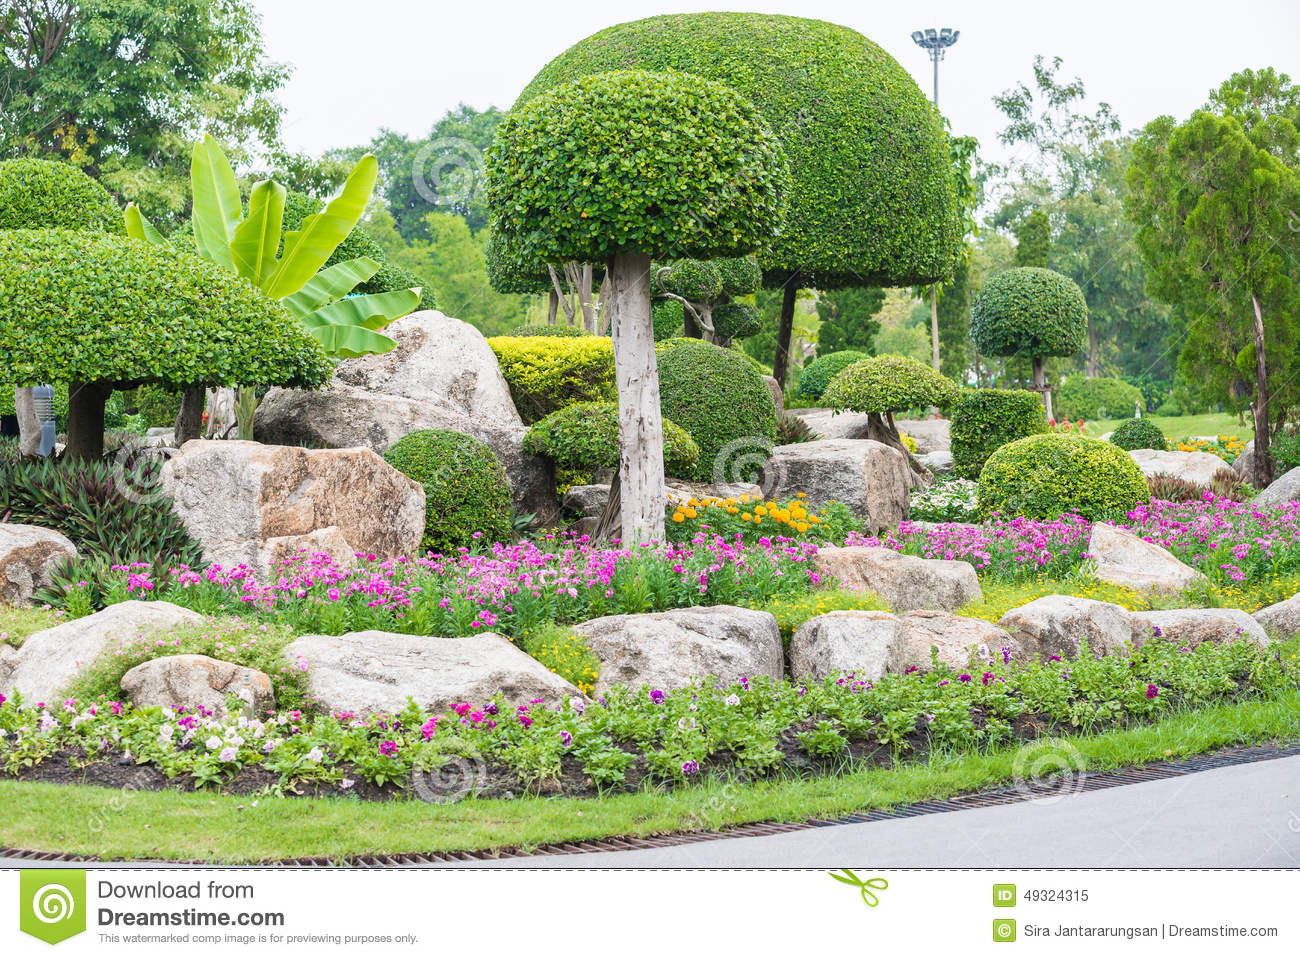 Gardening and landscaping with decorative trees stock photo image 49324315 - Decorative small trees for landscaping ...